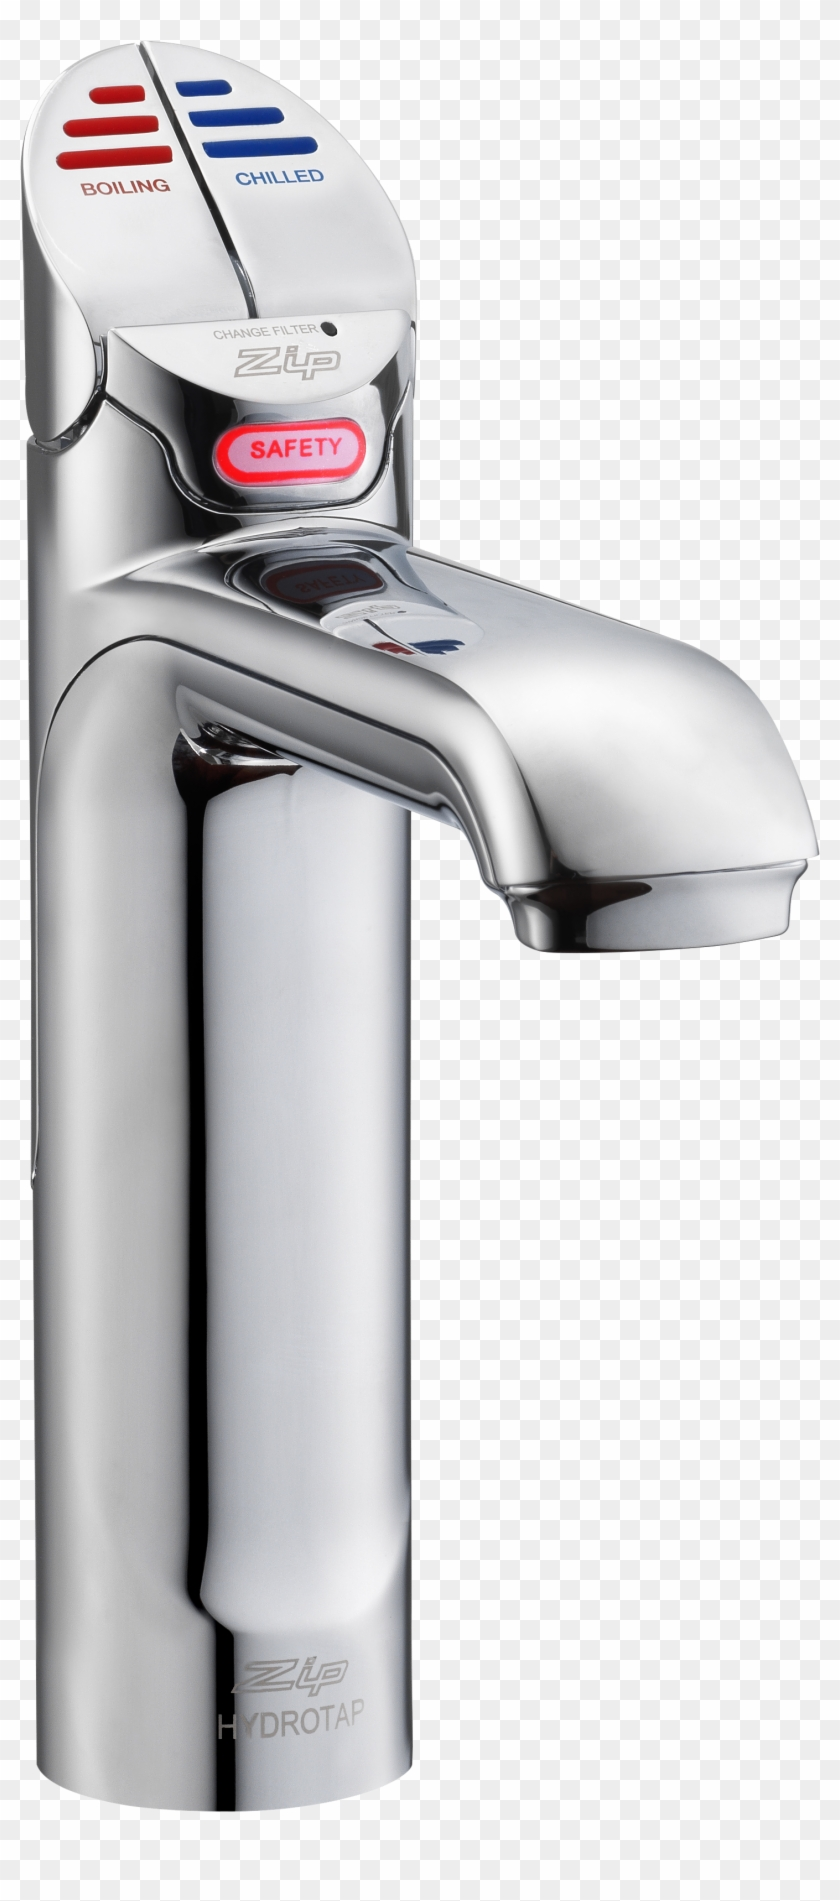 Water Tap Png - Boiling And Filtered Water Tap Clipart #3284598